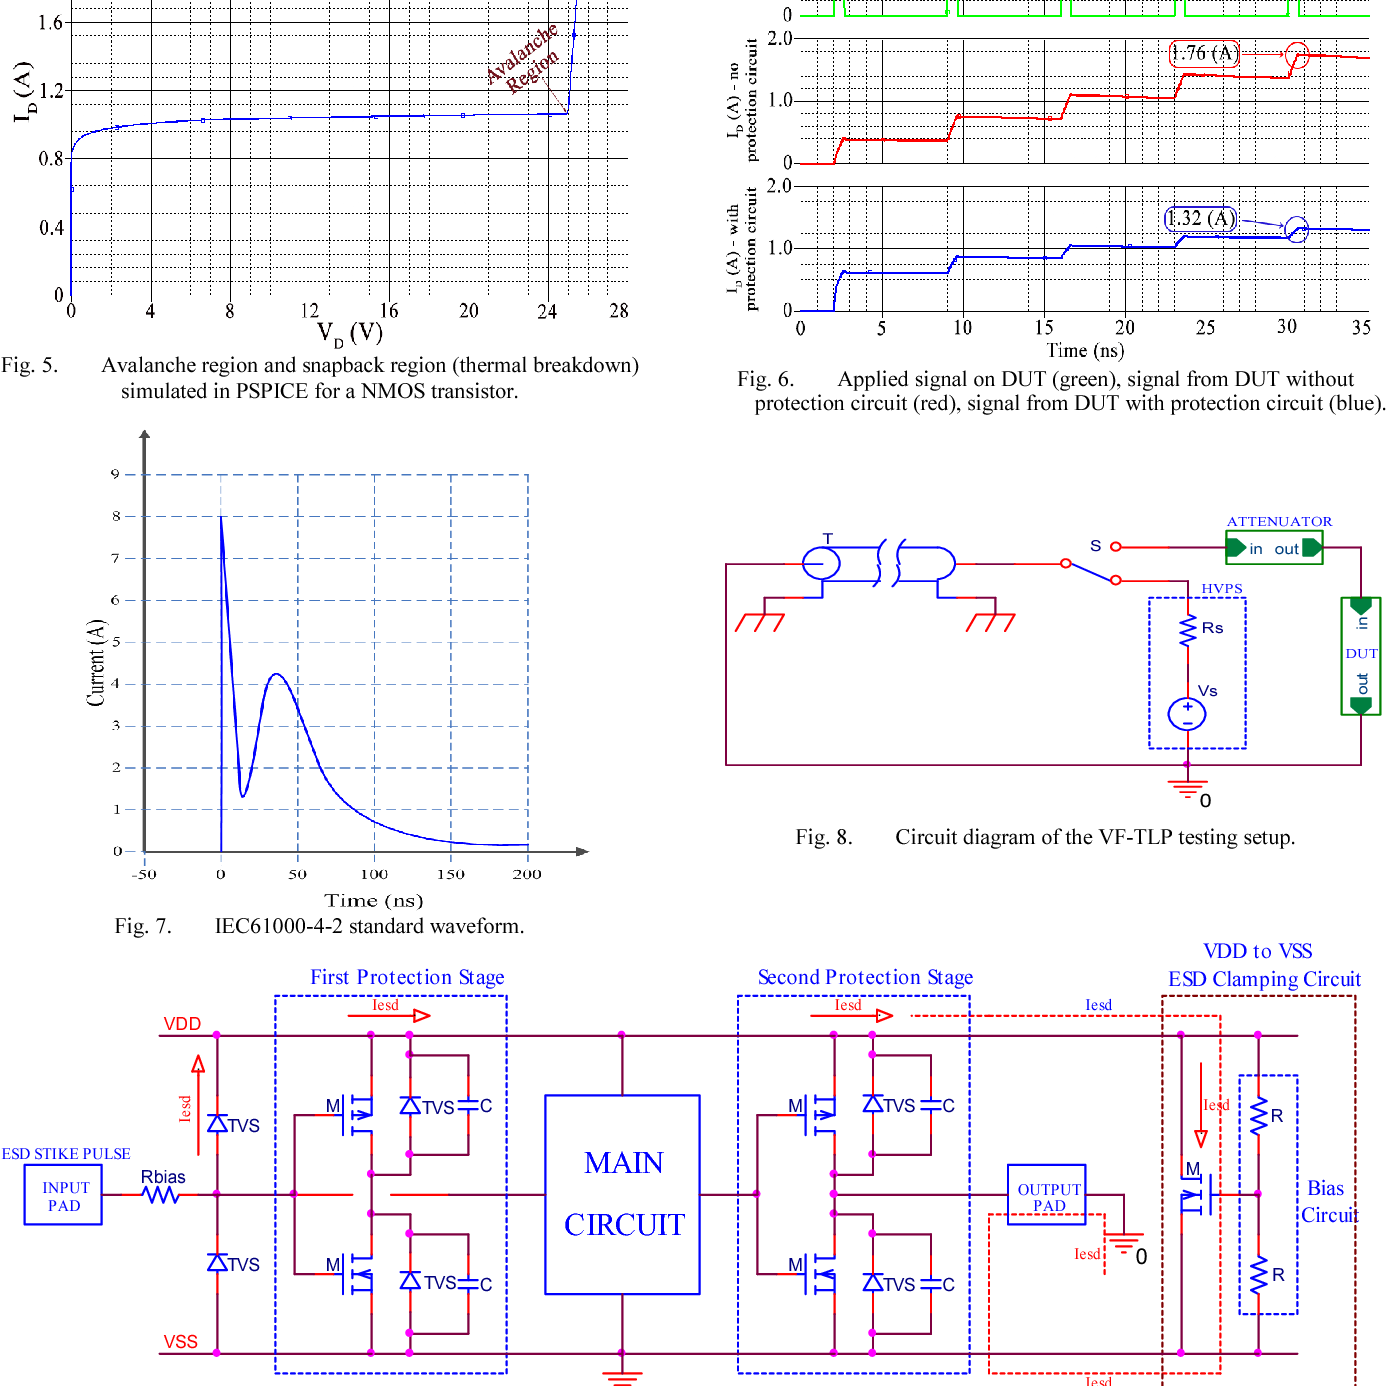 A Novel Esd Protection Structure Used To Enhance The Safety Of Mosfet Circuit Figure 5